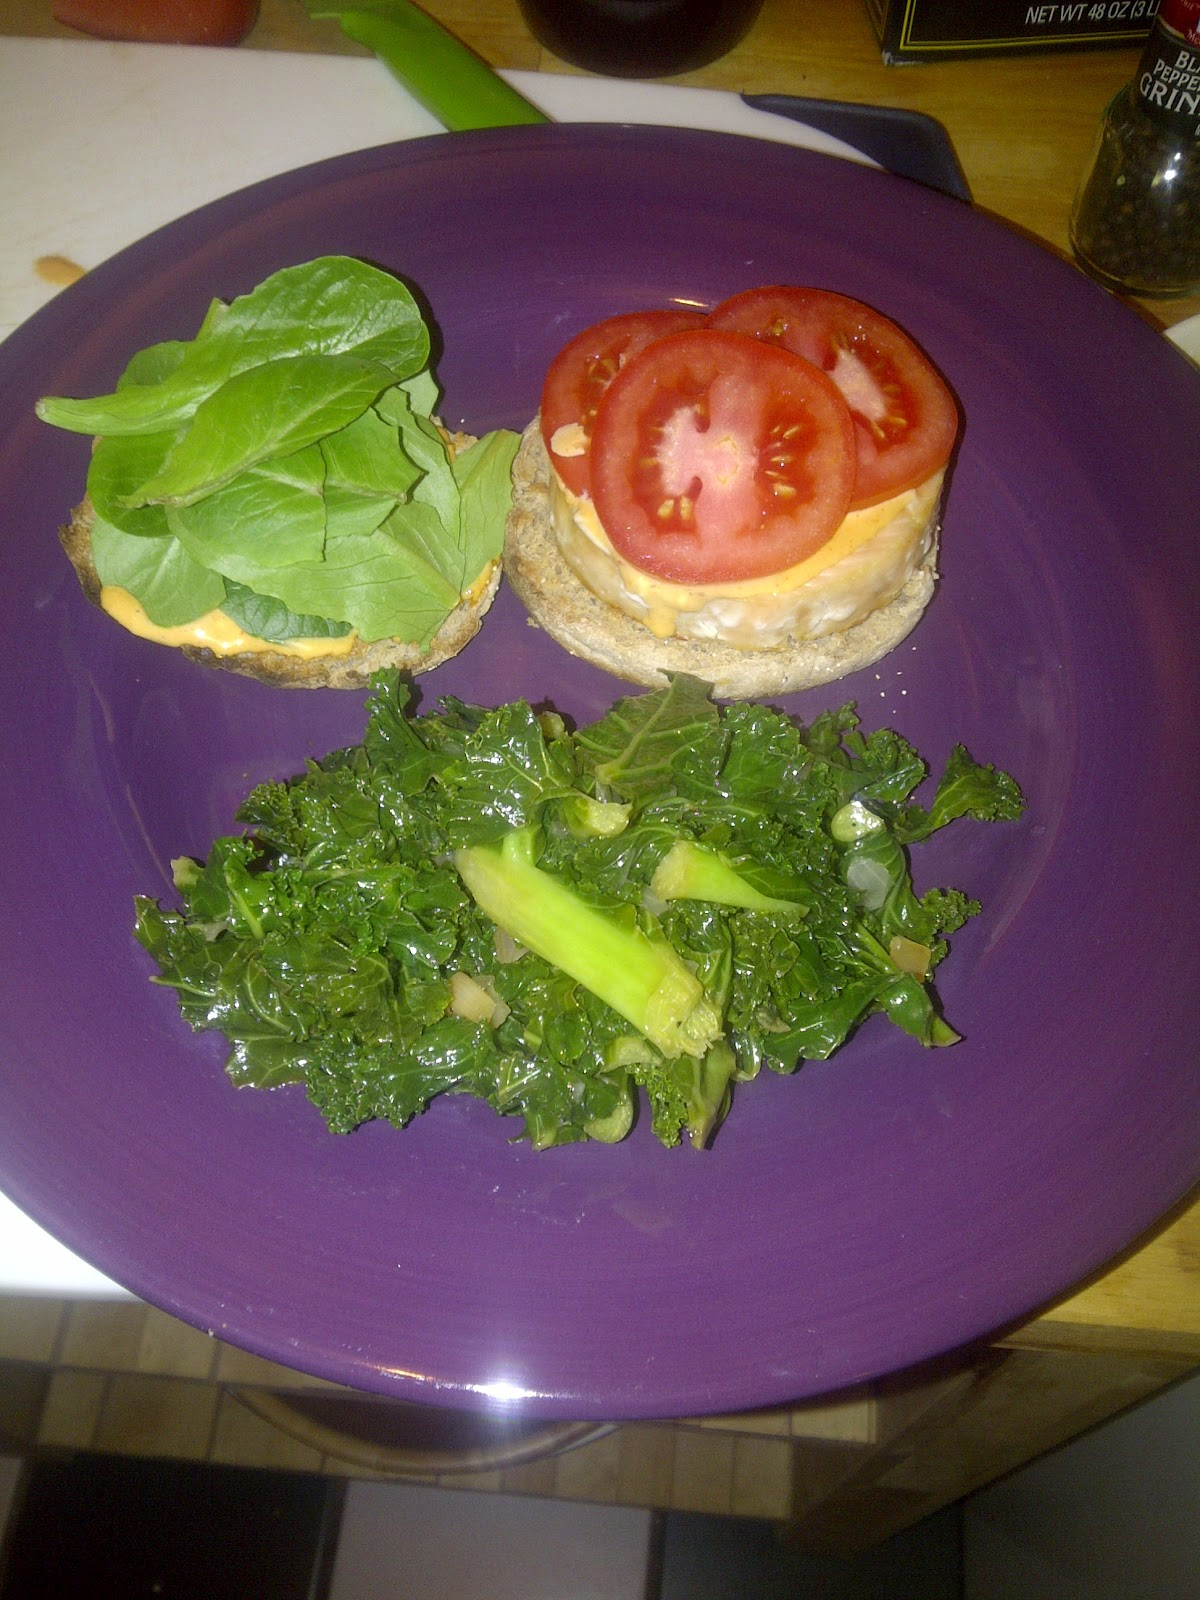 Whole Foods Salmon Burger Oven